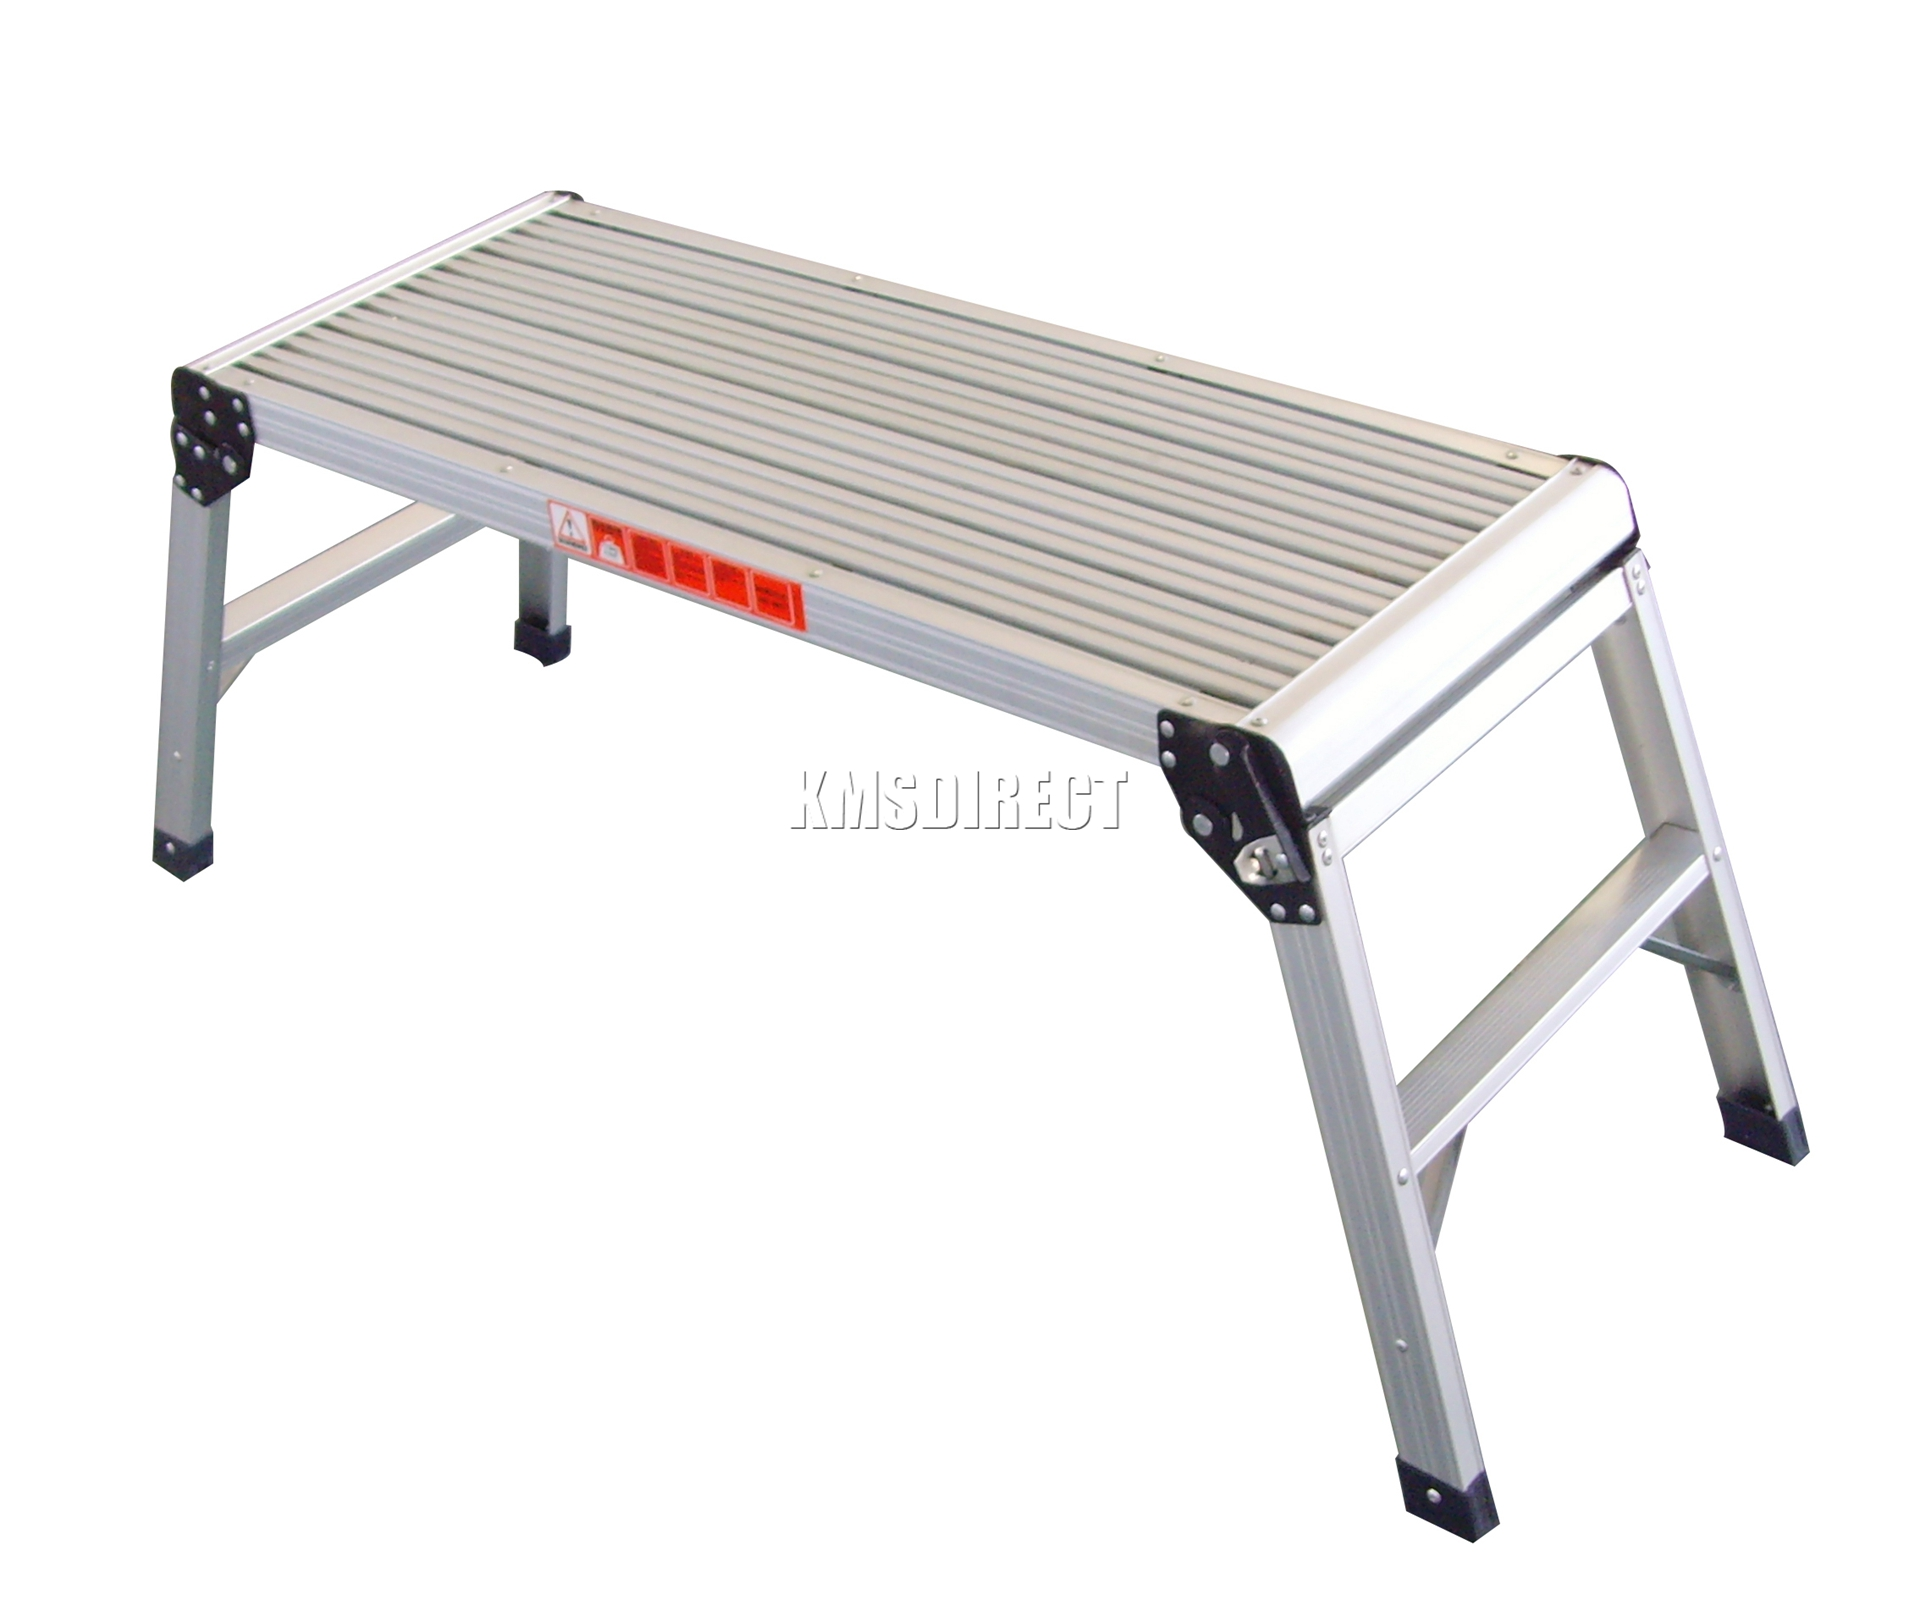 Foxhunter 150kg Folding Step Hop Up Aluminium Work